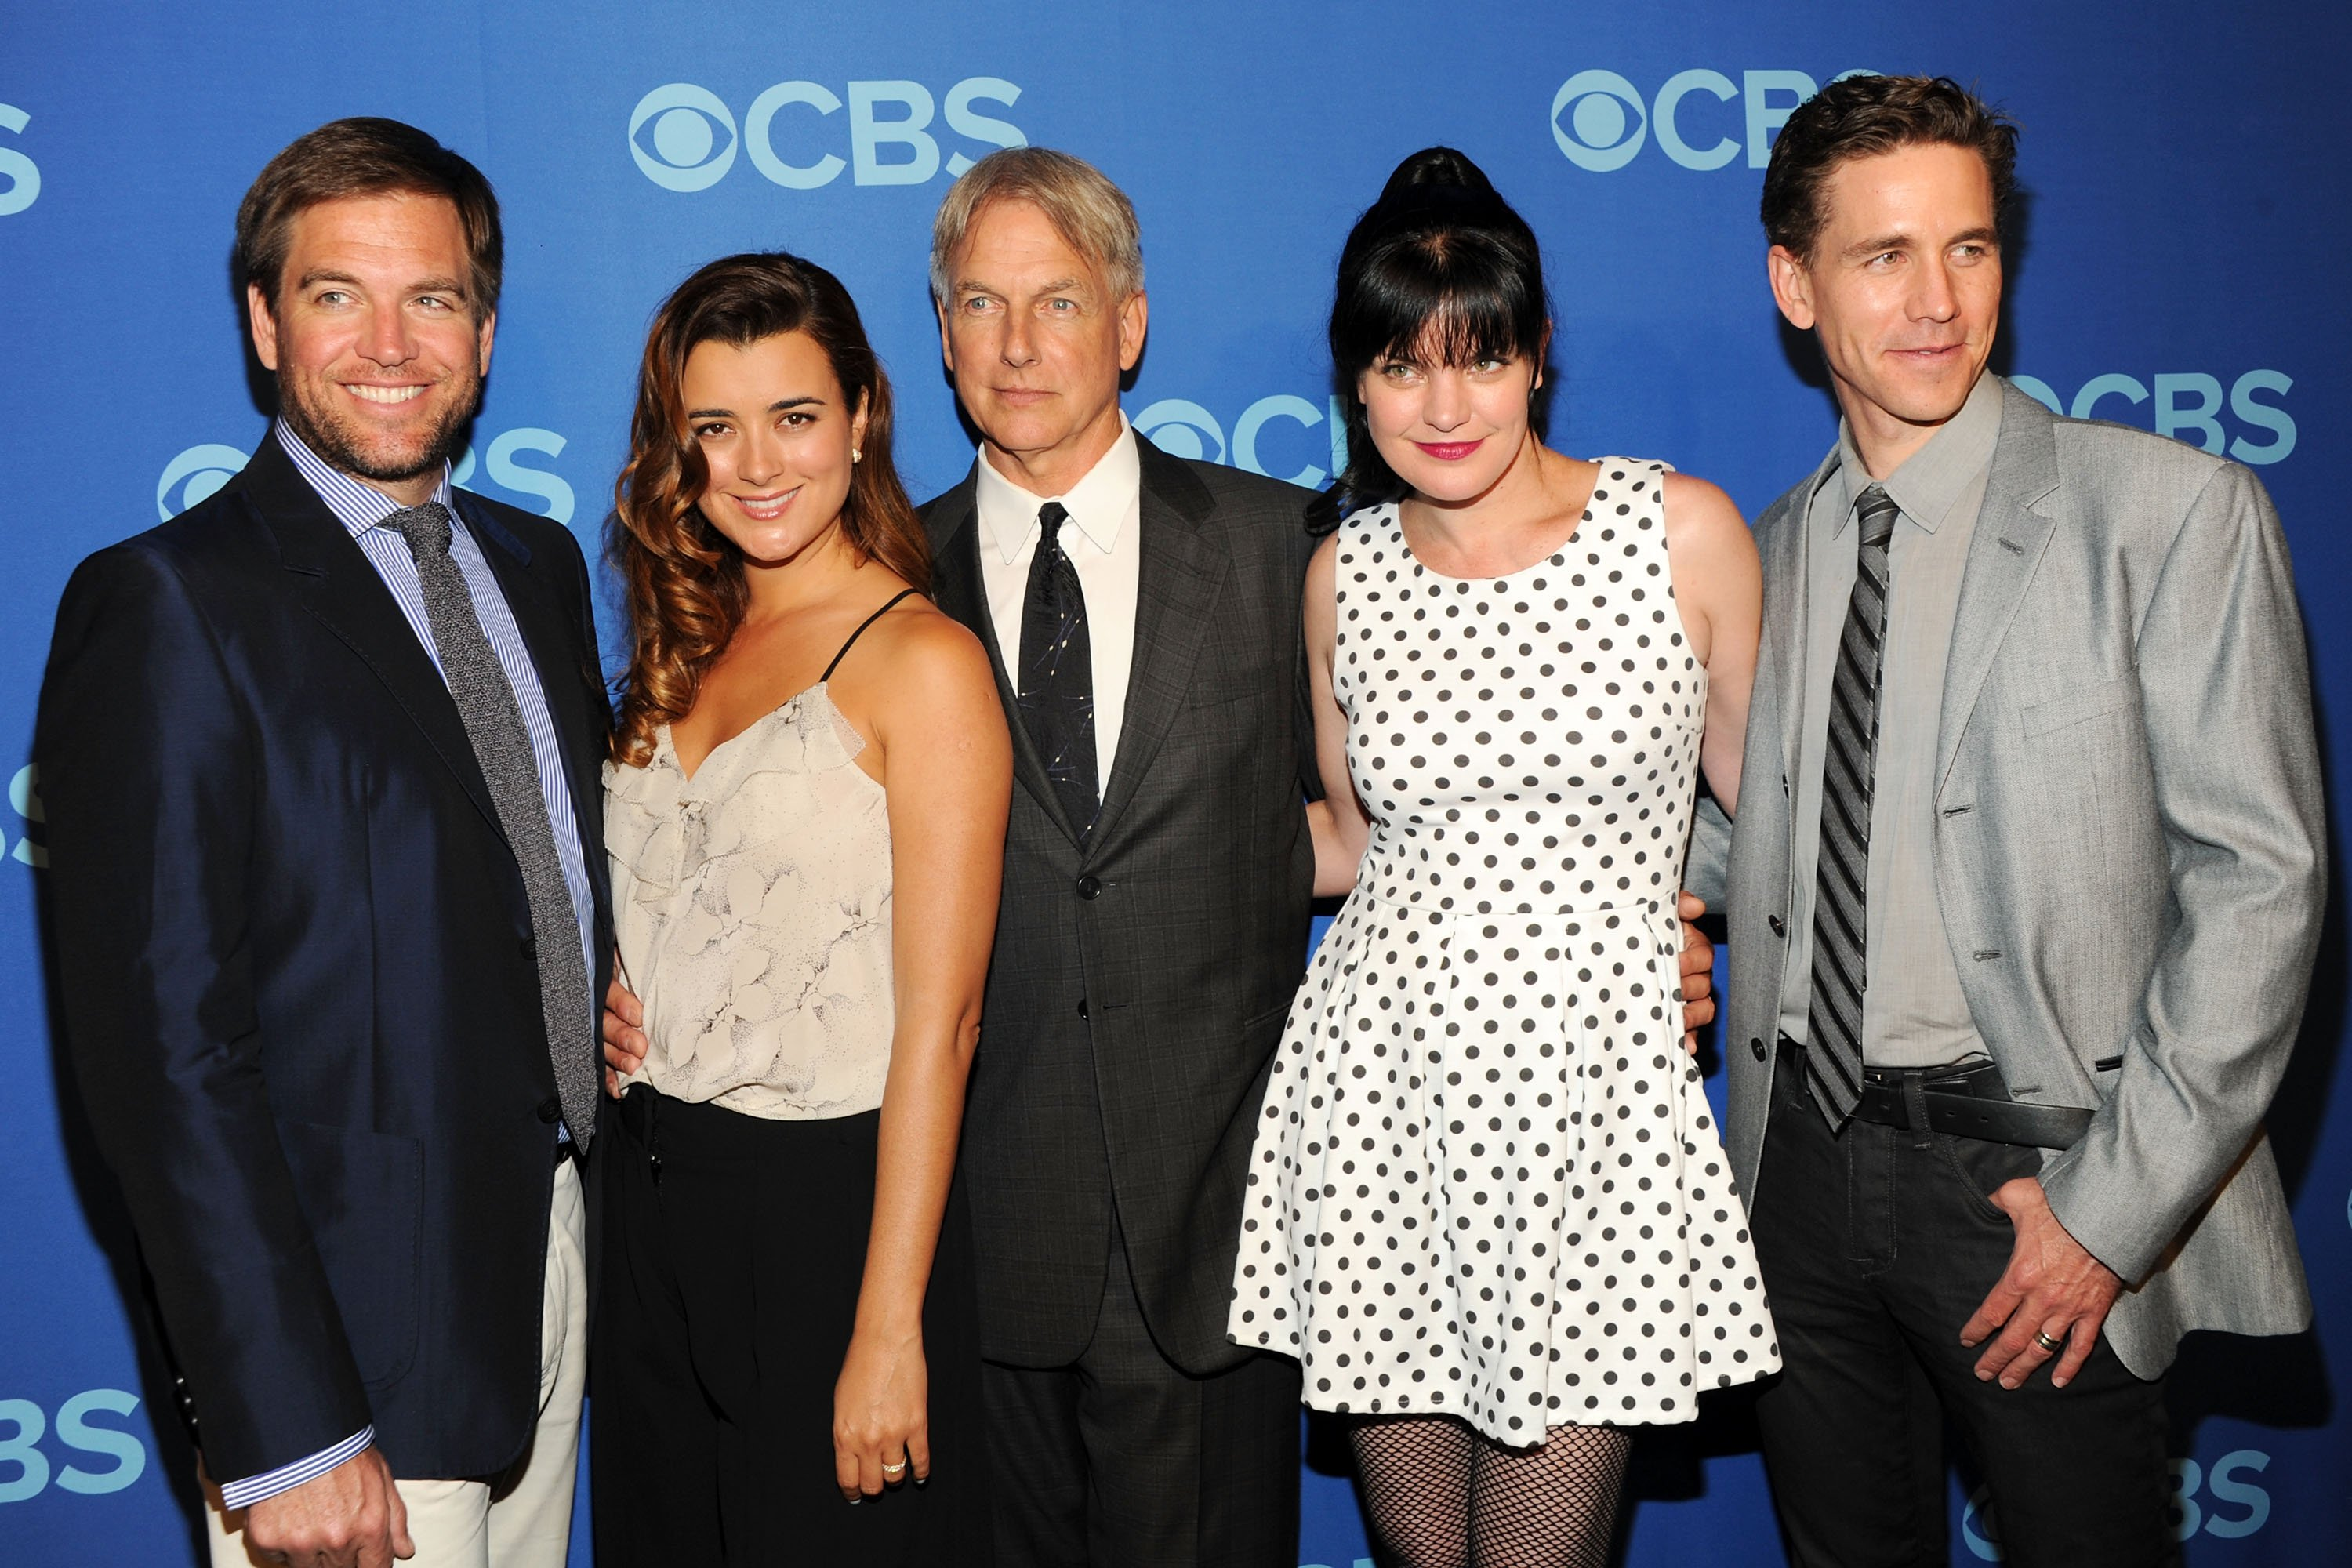 Cast of NCIS Michael Weatherly, Cote de Pable, Mark Harmon, Pauley Perrette and Brian Dietzen attend CBS 2013 Upfront Presentation at The Tent at Lincoln Center on May 15, 2013 in New York City. | Source: Getty Images